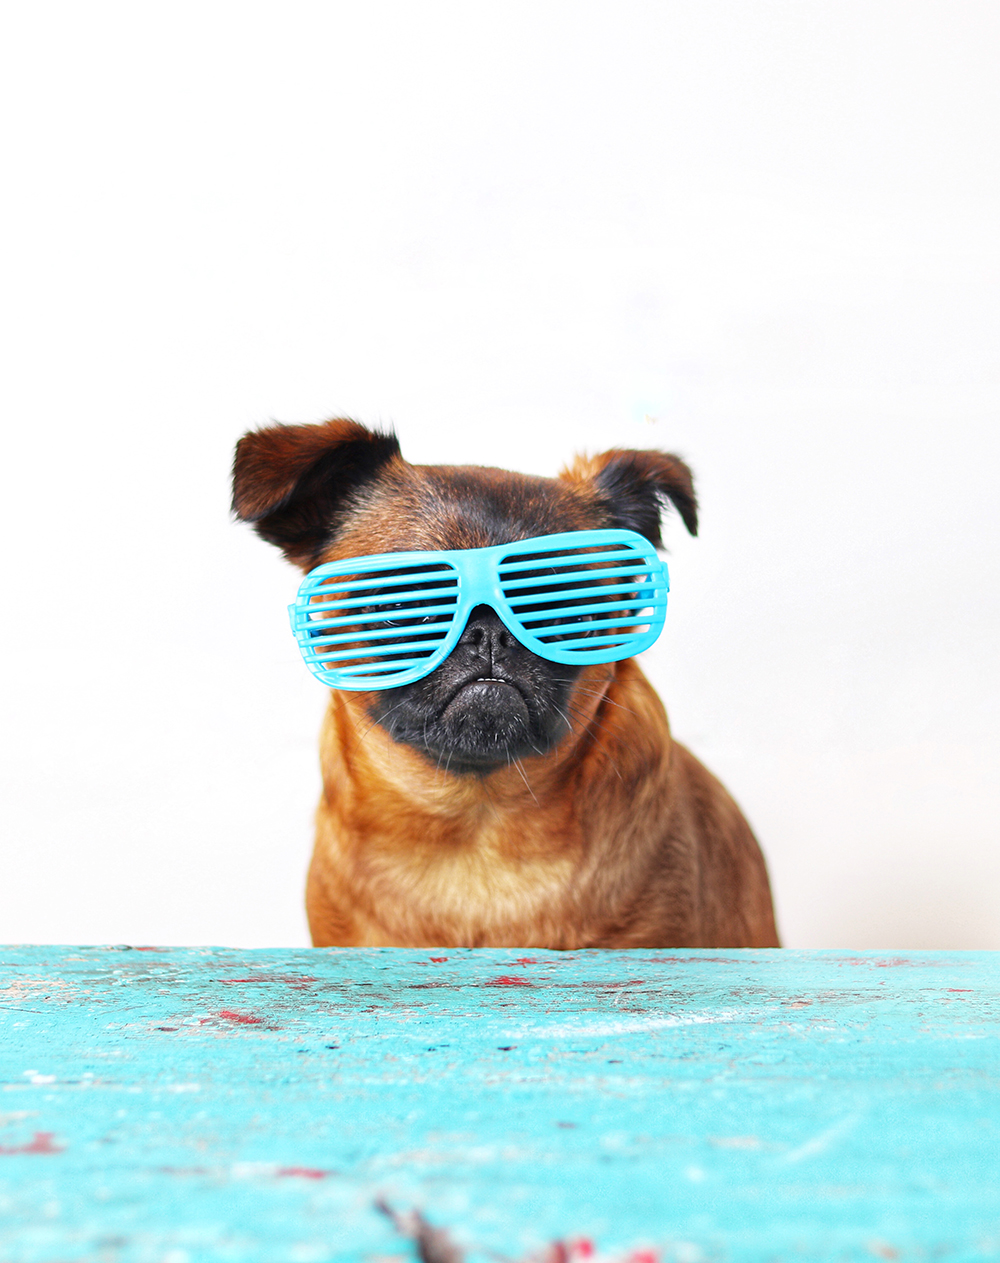 hacks for running a successful dog Instagram account